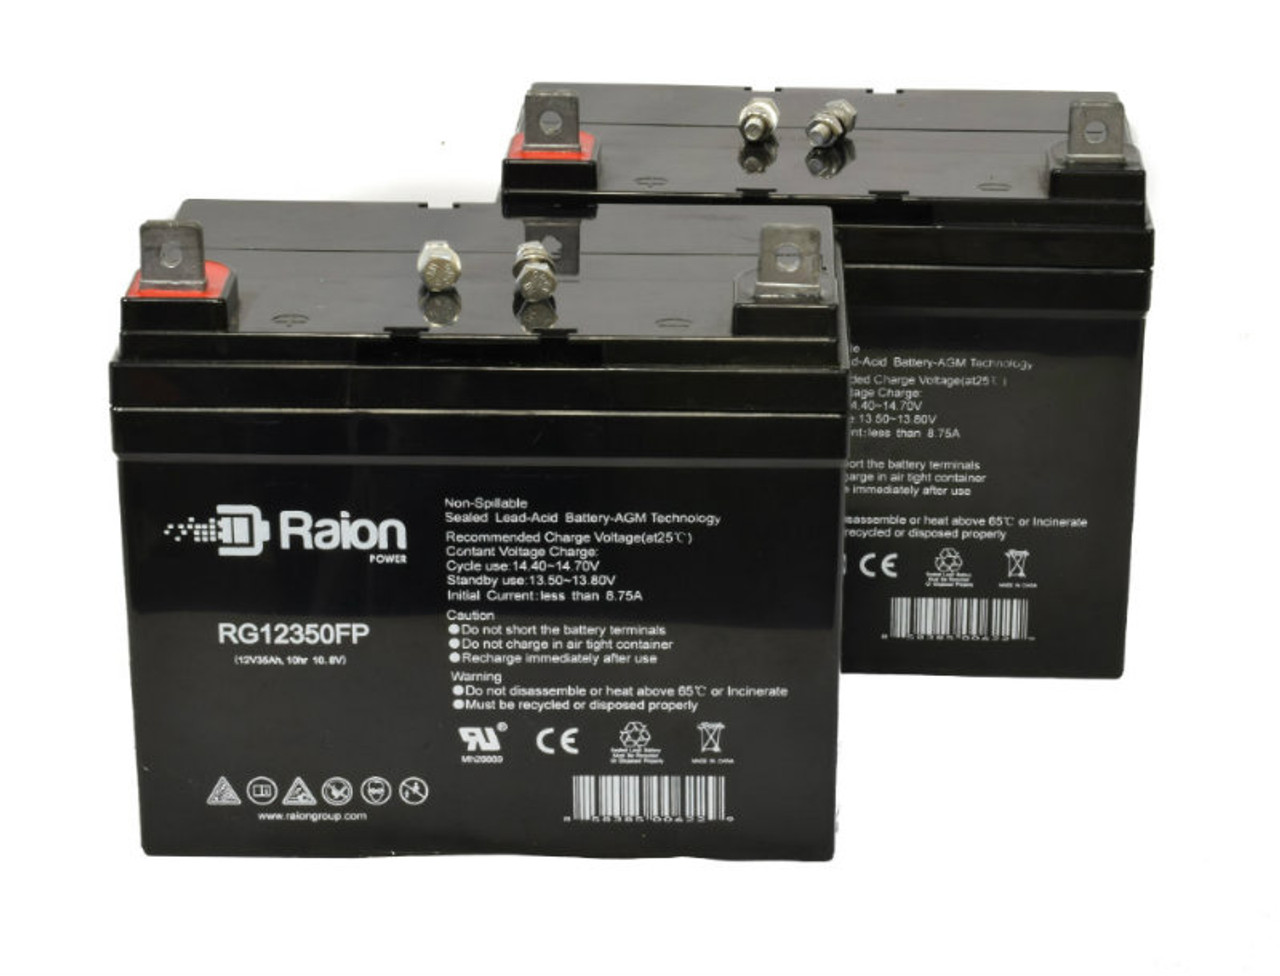 Raion Power RG12350FP Replacement Wheelchair Battery For Pride BoXSter (2 Pack)